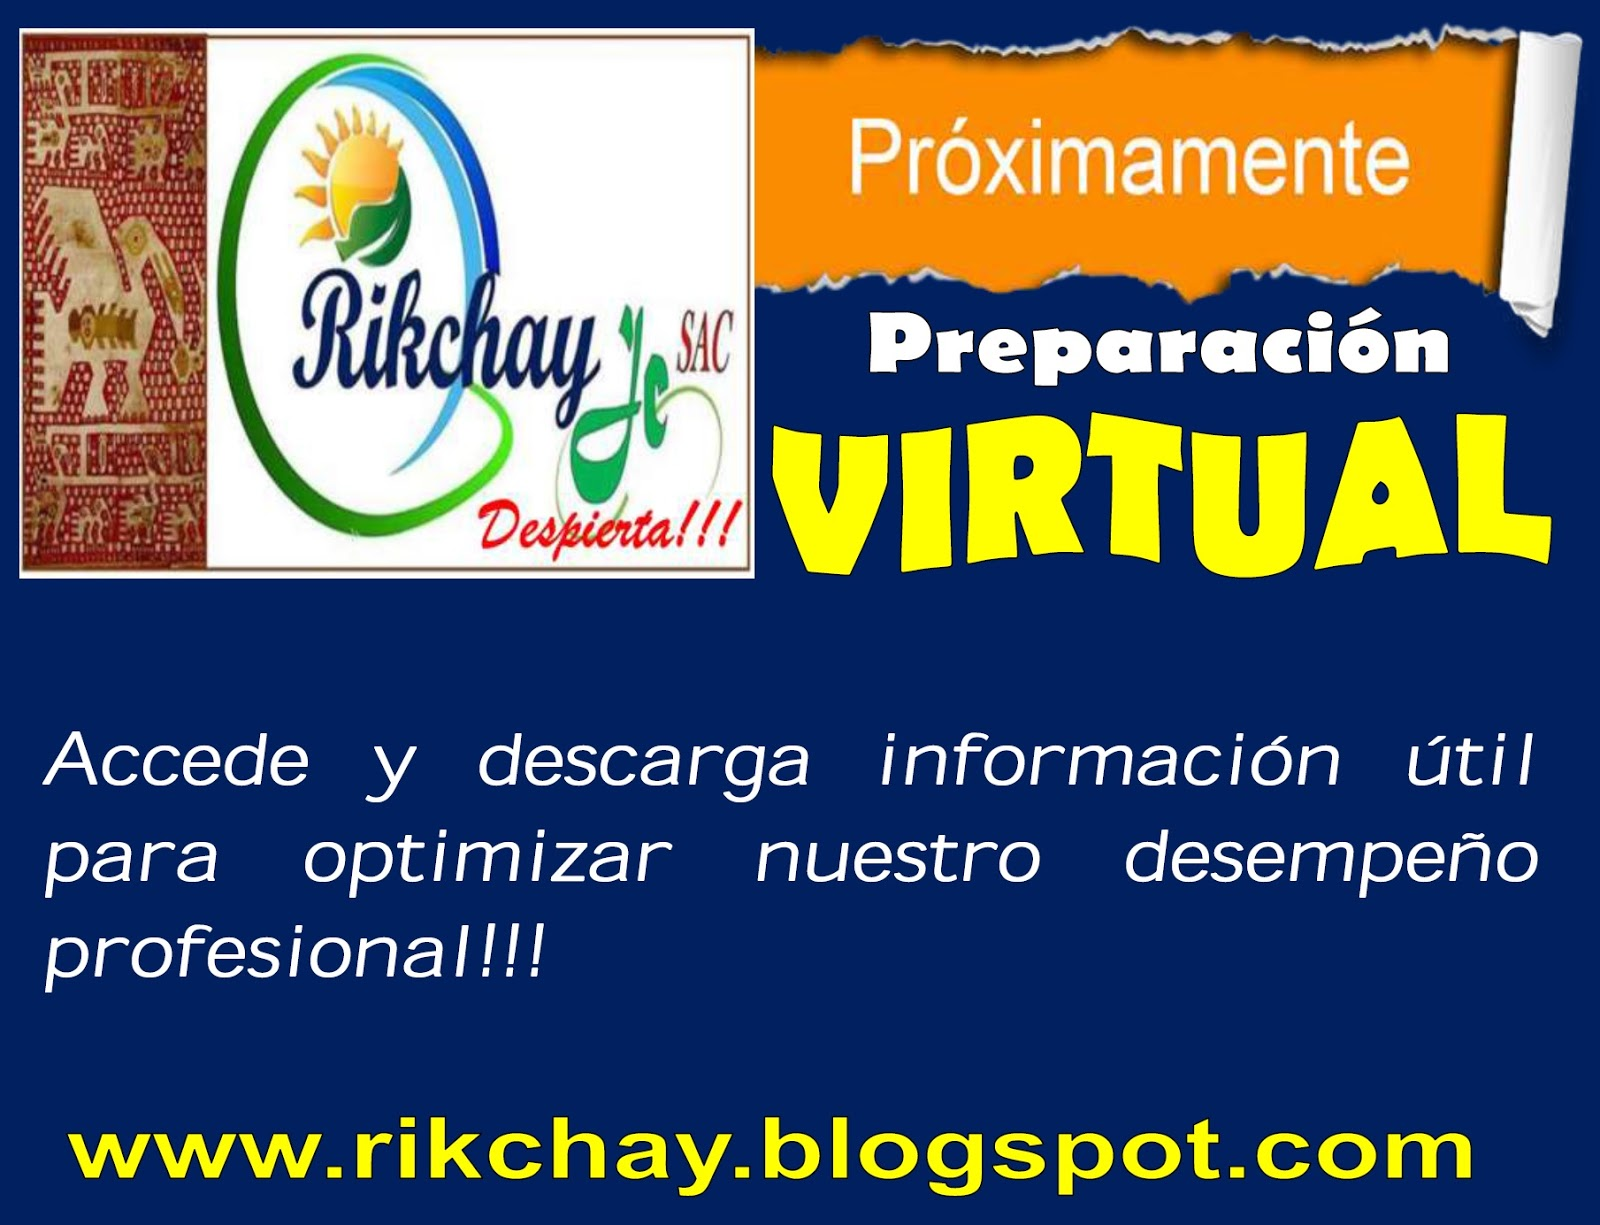 Organizaci n educativa rikchay jc descarga plazas de for Plazas vacantes para docentes